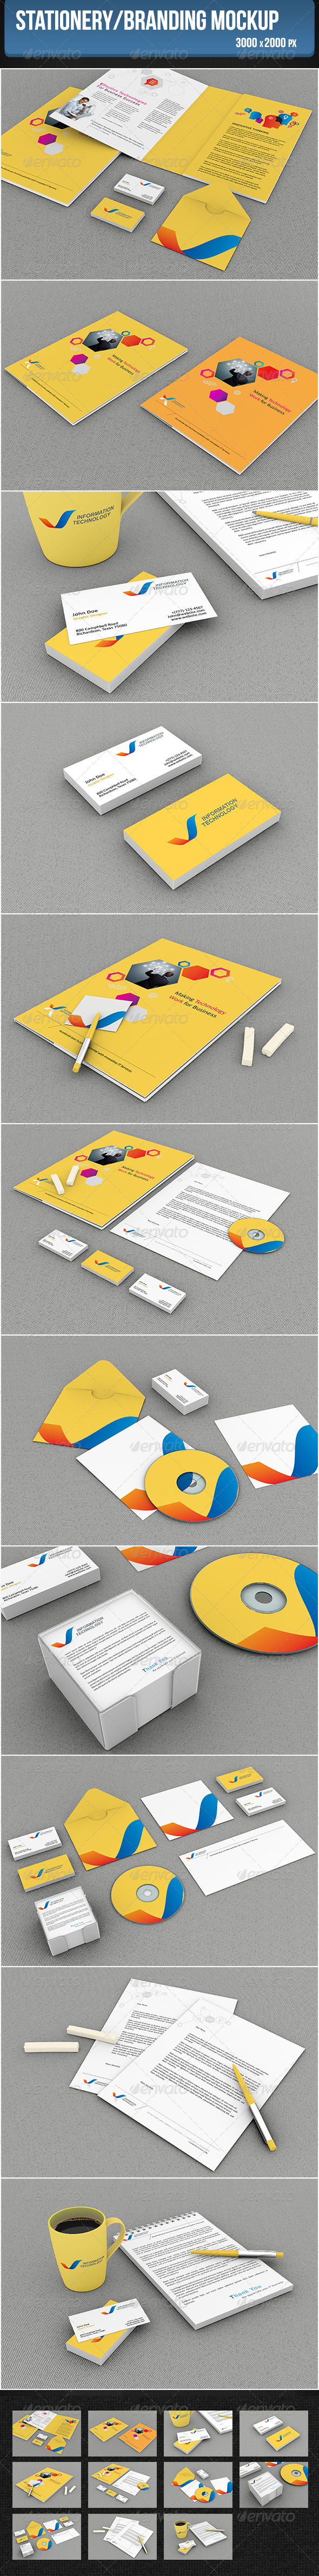 Stationery/Branding Mockup - Product Mock-Ups Graphics